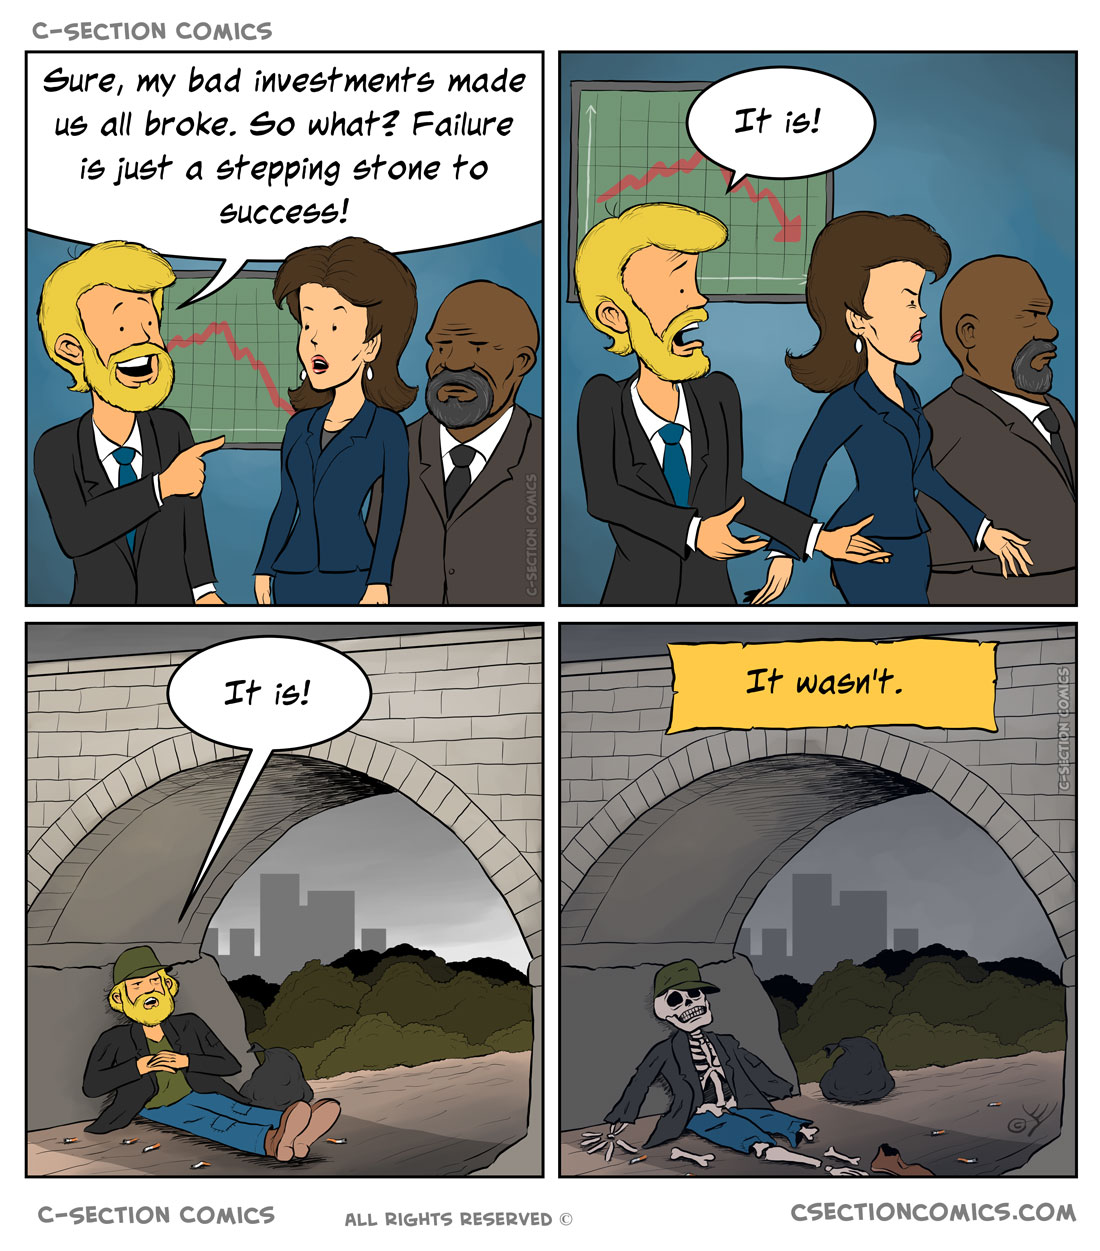 Failure is just a stepping stone to success. War is just a stepping stone to peace. Global warming is just a stepping stone to global cooling. This comic is just a stepping stone to funny comics.